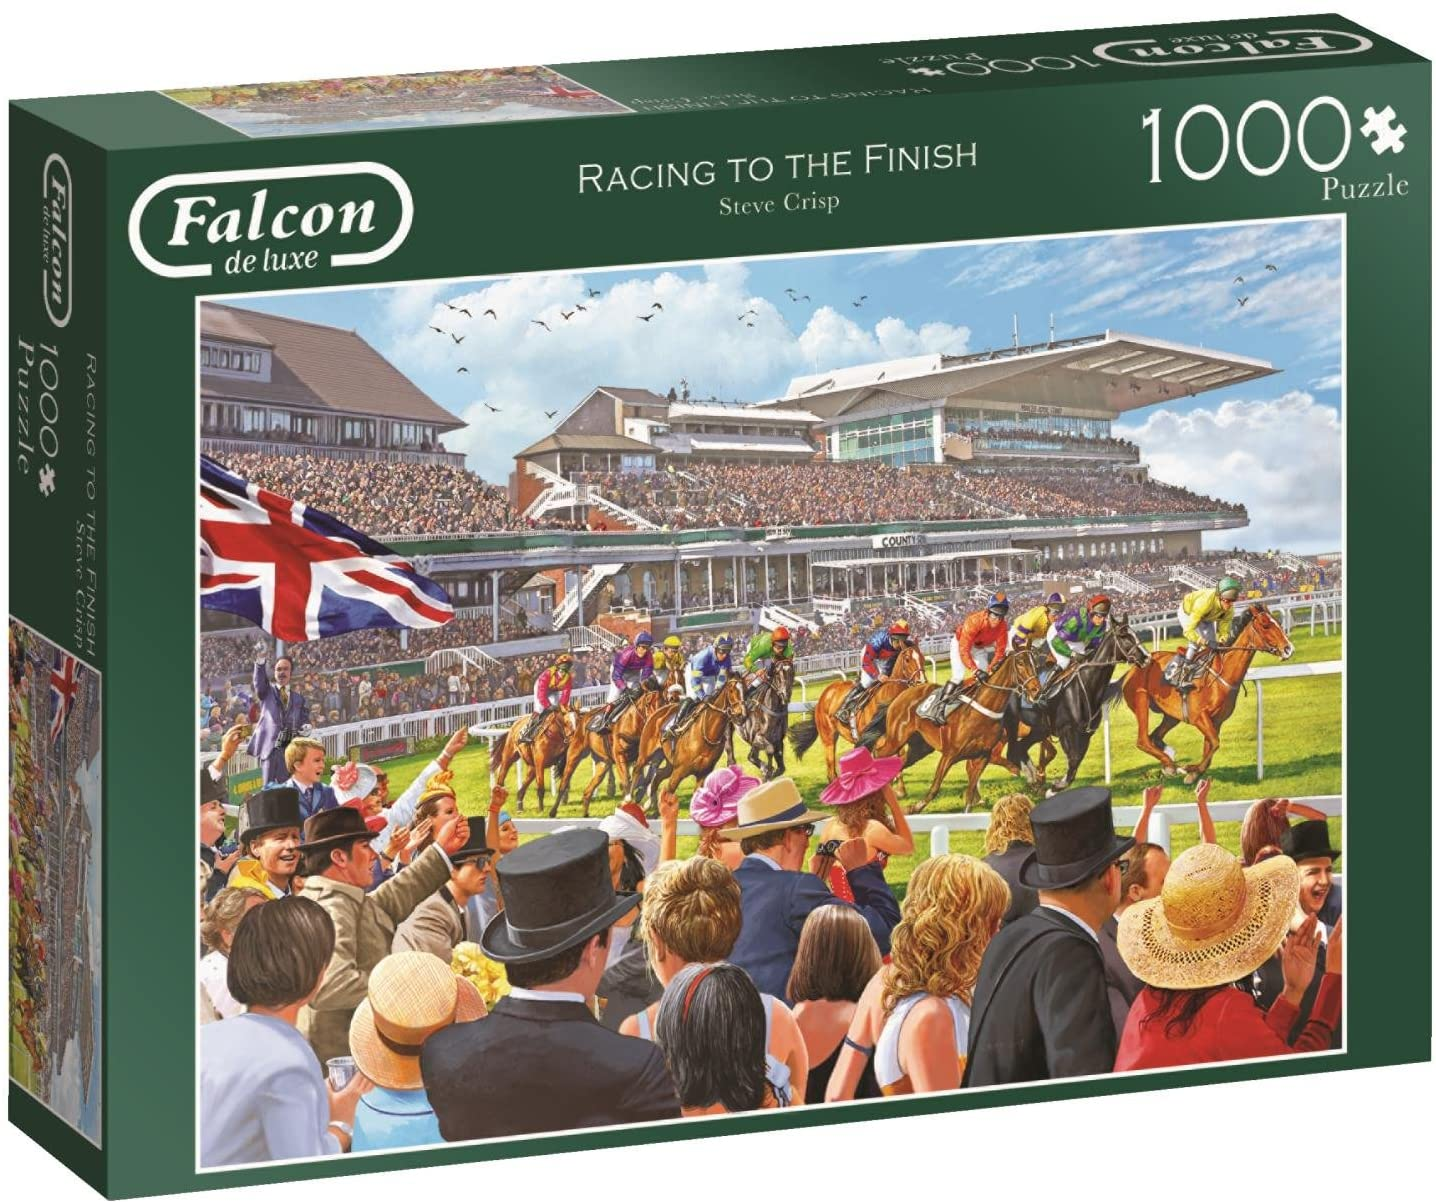 Jumbo 11202 Falcon de Luxe Racing to The Finish 1000 Piece Jigsaw Puzzle